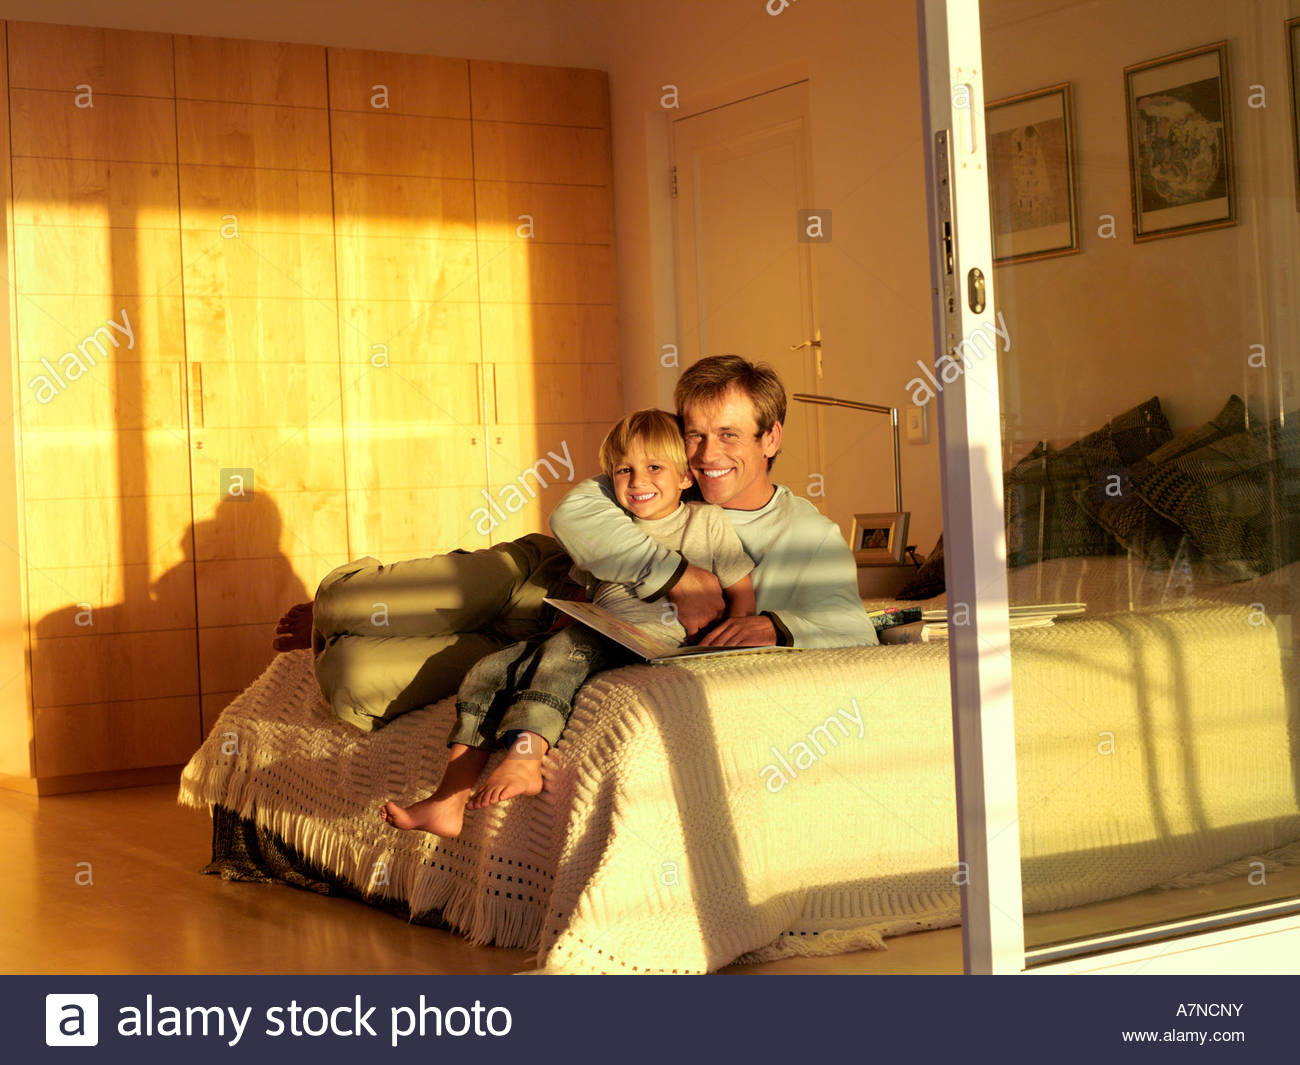 Father and son 5 7 sitting on bed with photo album smiling portrait view through sliding doors - Stock Image